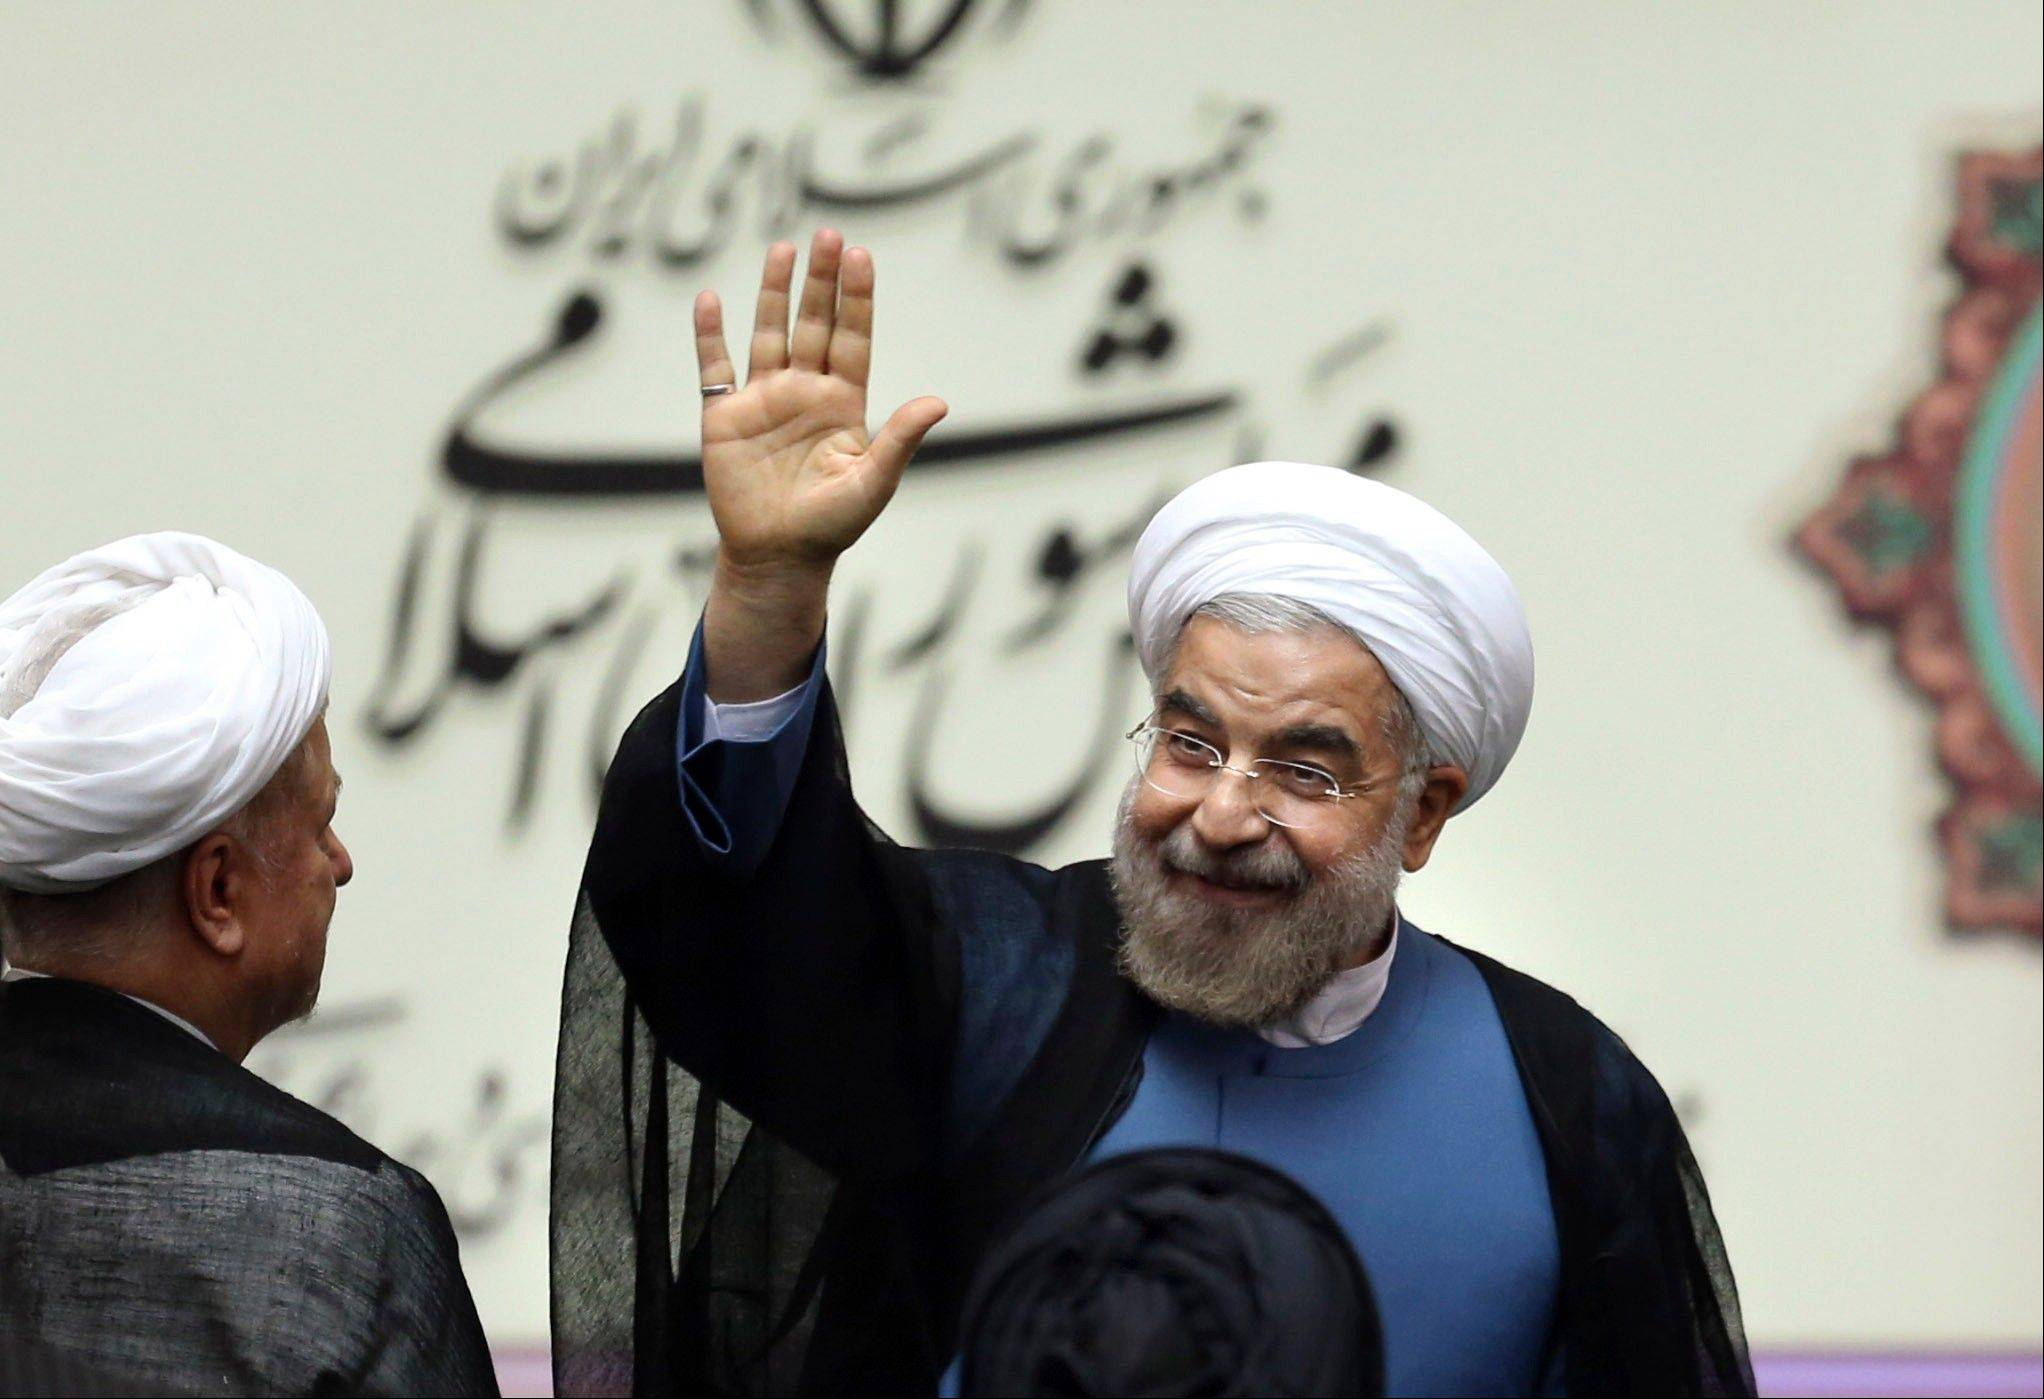 Iran�s new President Hassan Rouhani. A war-weary Congress generally backs President Barack Obama�s outreach to Iran, but with tougher U.S. economic measures against Tehran on the way, the president�s diplomatic task could get harder if he doesn�t make quick progress.